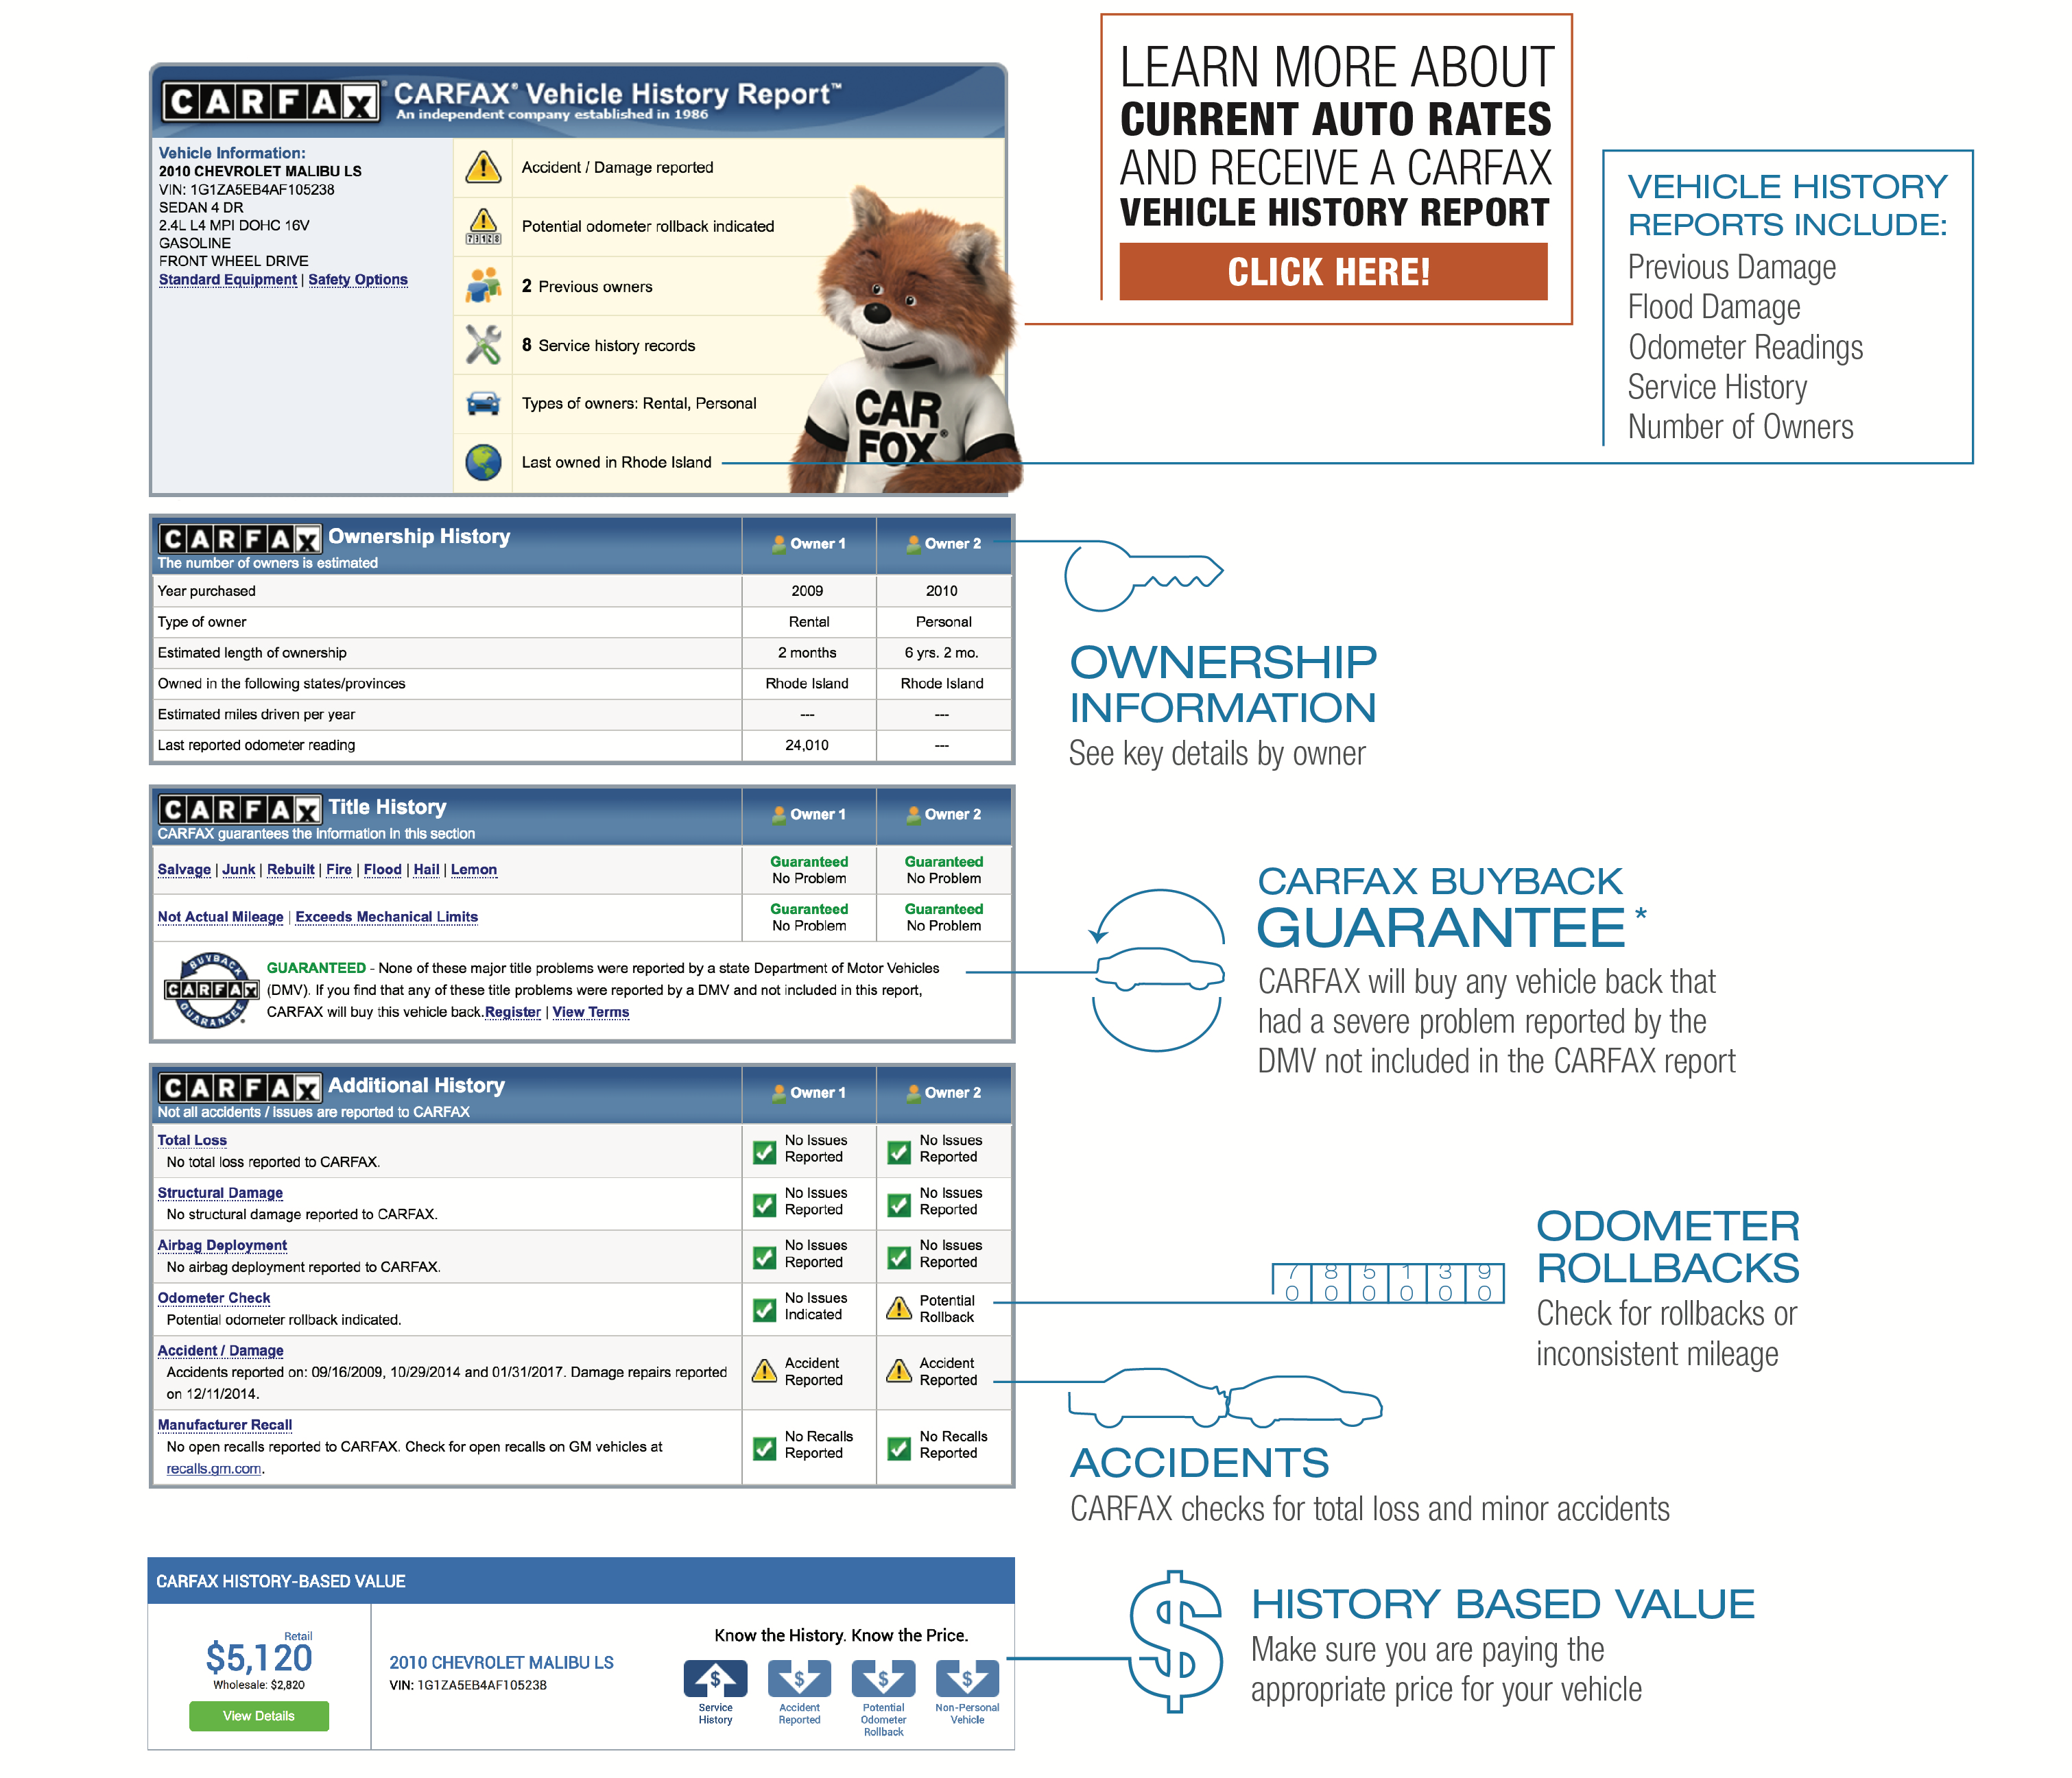 Carfax Title History Awesome Carfax Banking and Insurance Group More Information Better Decisions